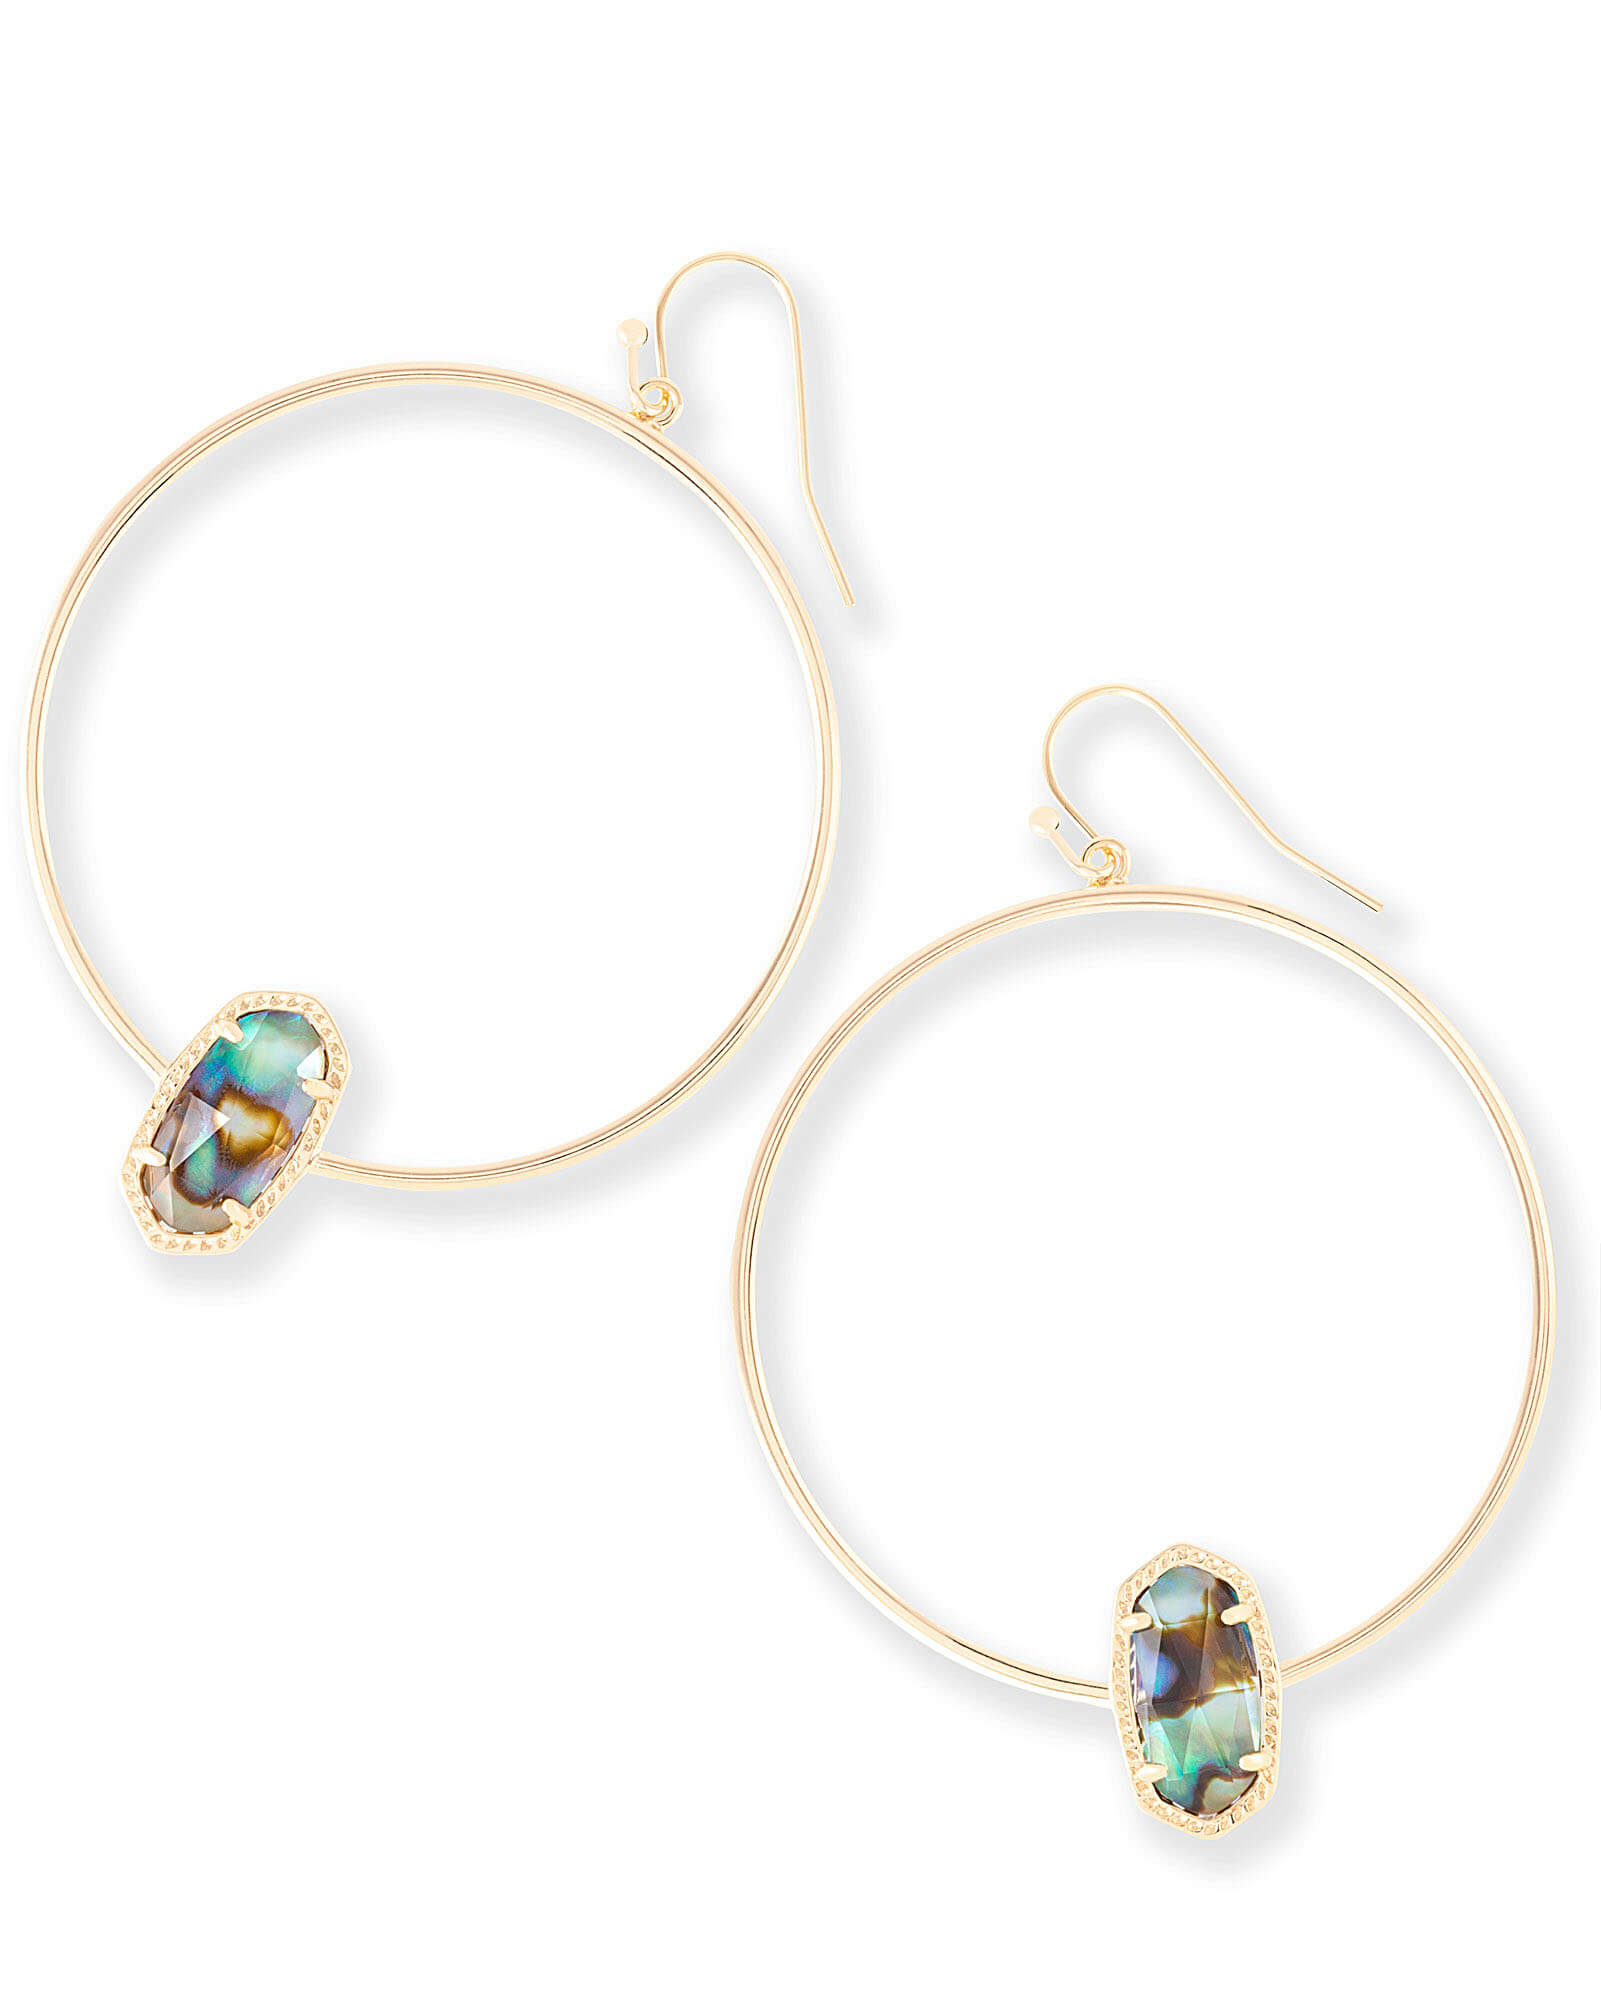 Elora Gold Hoop Earrings in Abalone Shell